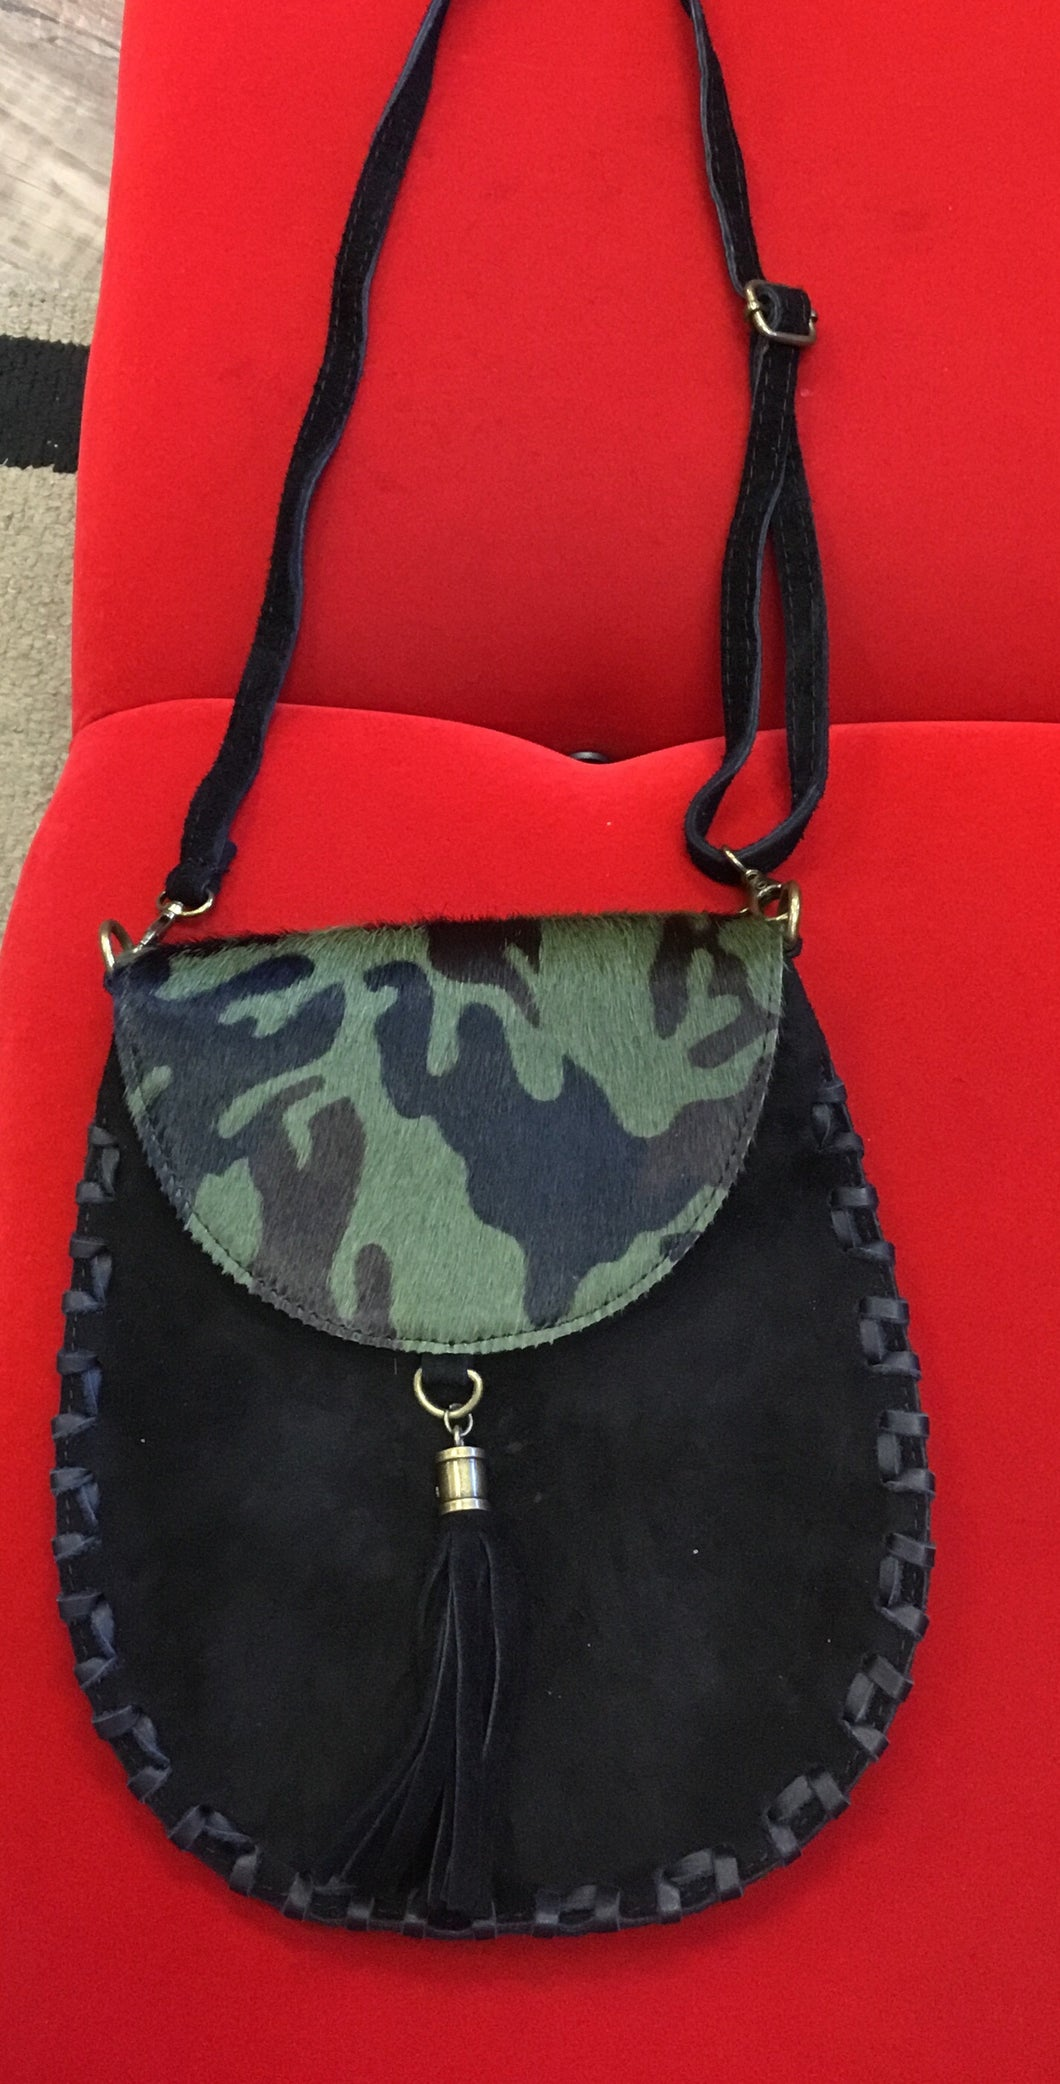 Crossbody bag in suede with camouflage flap and tassel